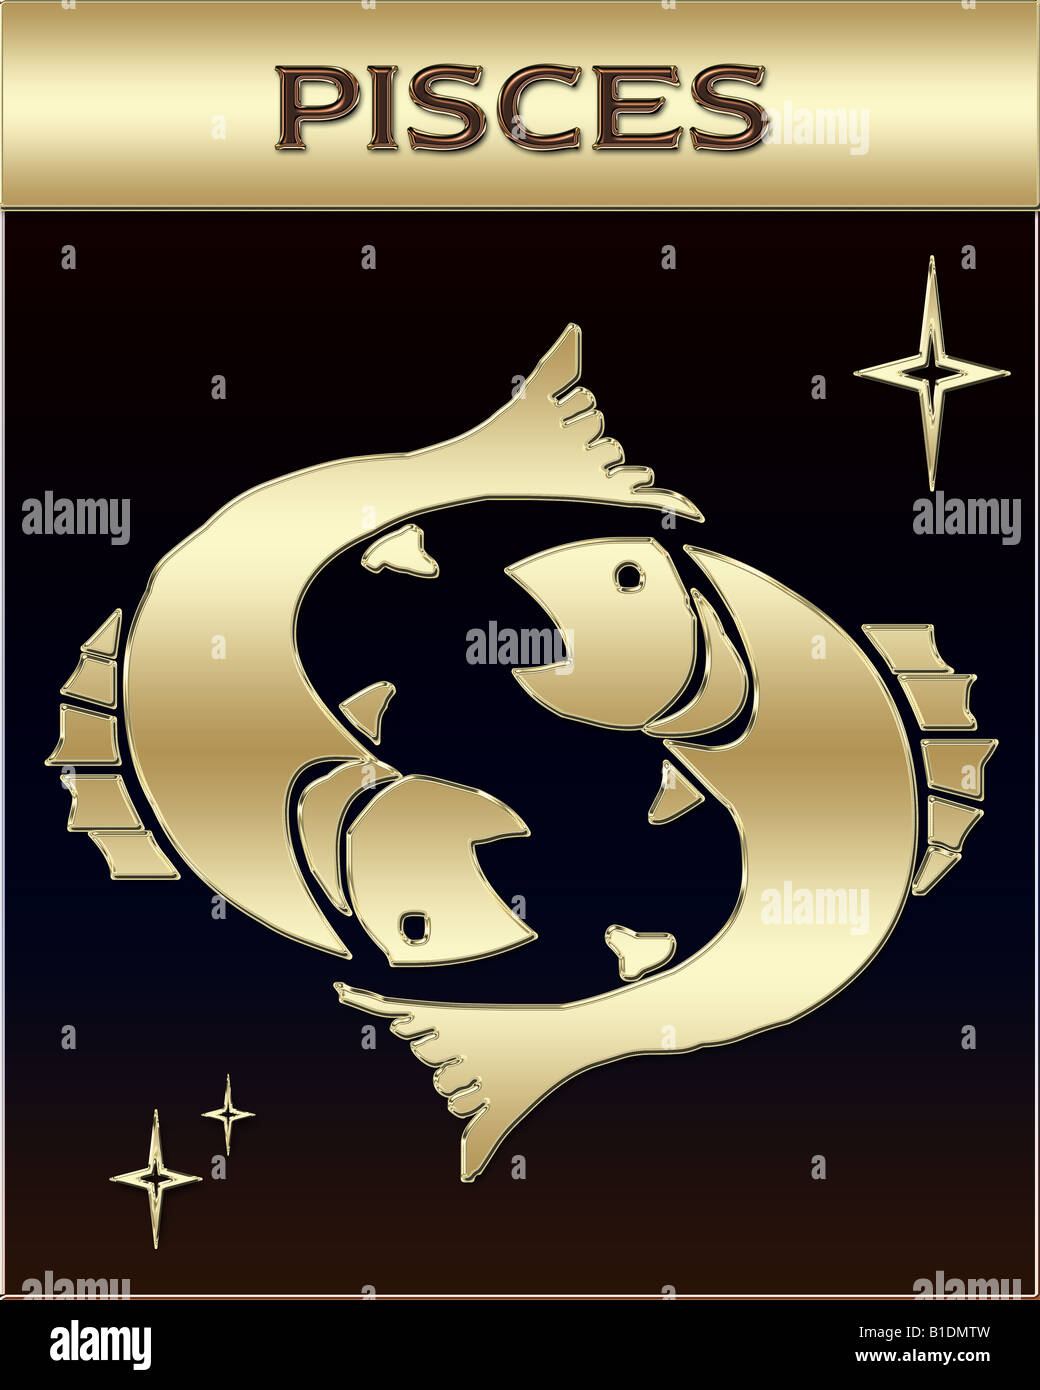 Golden Zodiac sign illustration with name - Stock Image